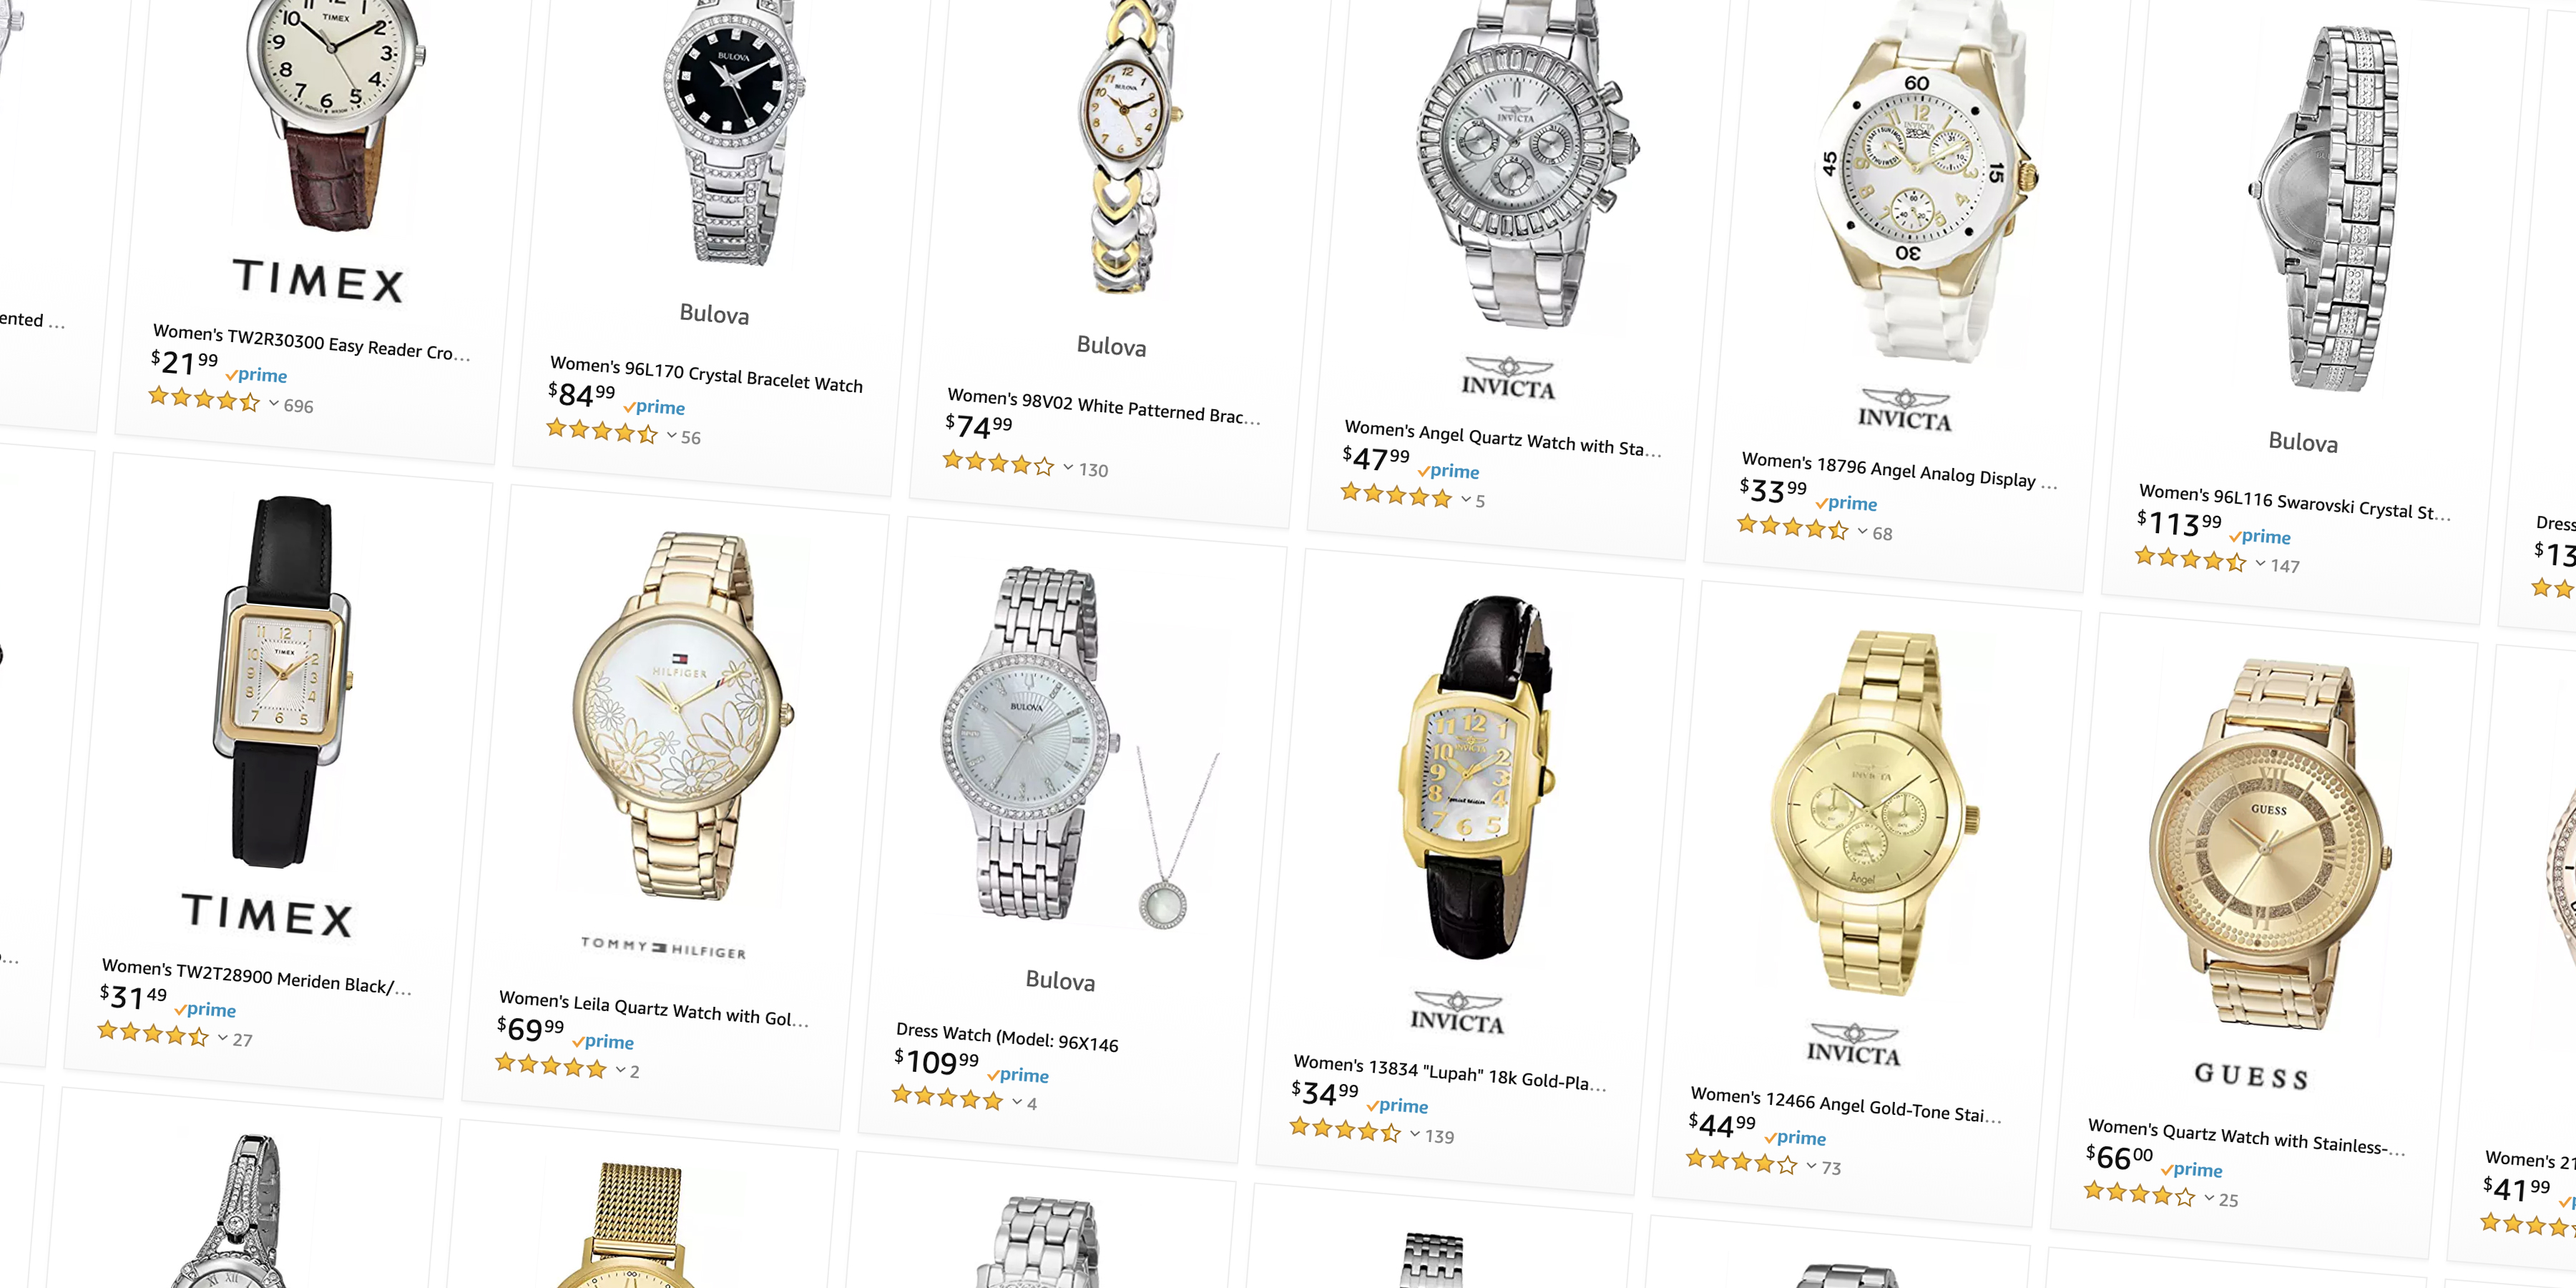 Amazon Gold Box features Mother's Day watches from $22: Timex, Lacoste, Invicta, more